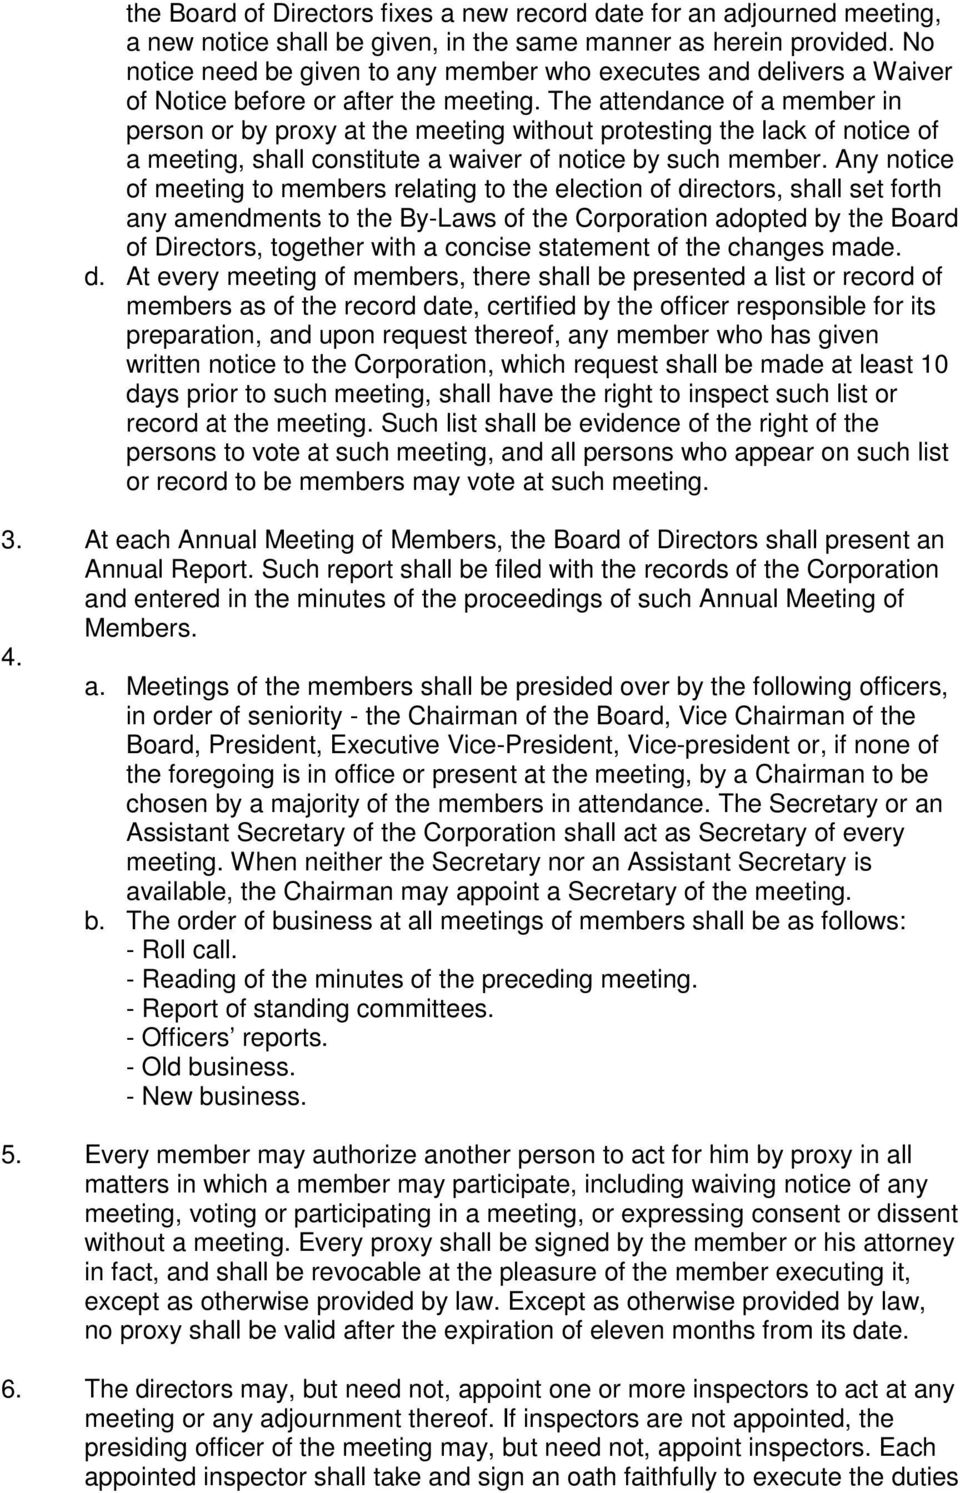 The attendance of a member in person or by proxy at the meeting without protesting the lack of notice of a meeting, shall constitute a waiver of notice by such member.